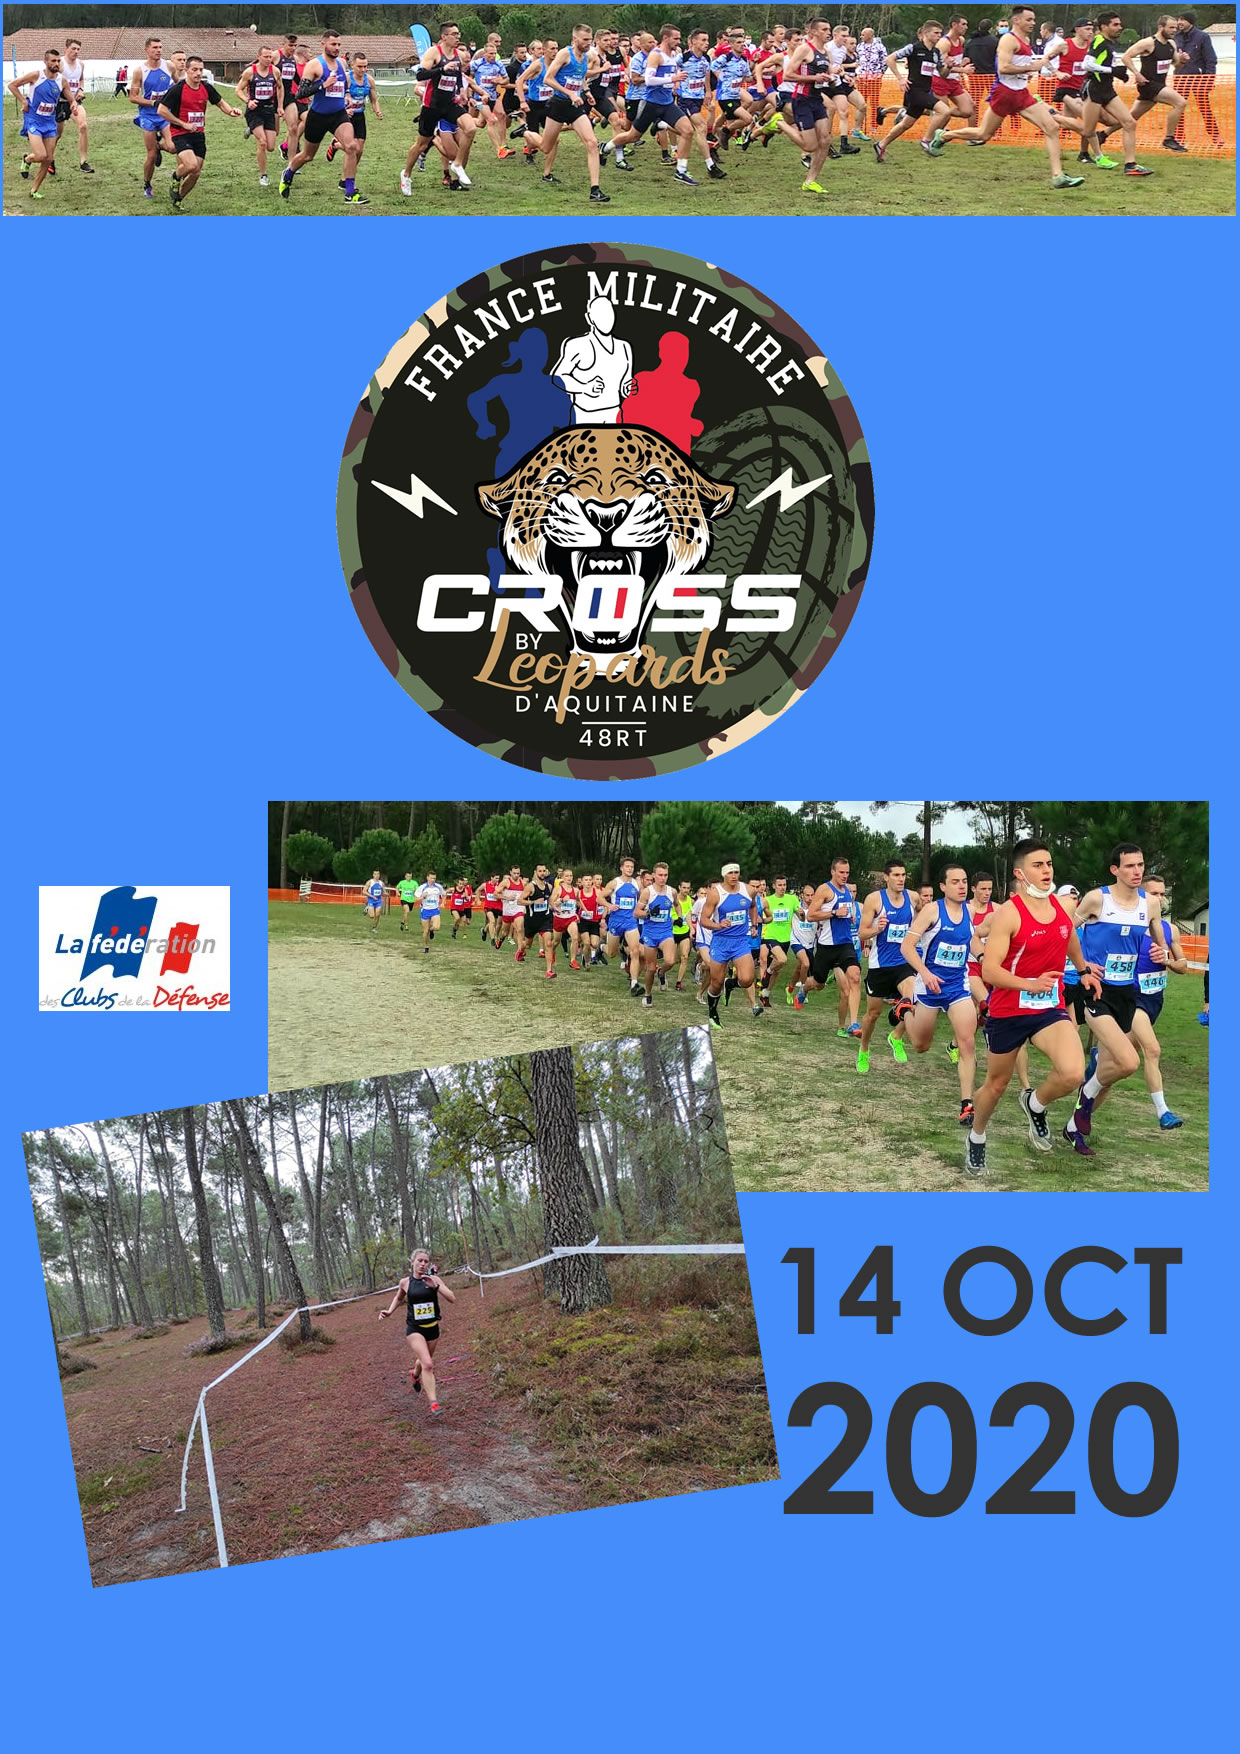 CROSS MILITAIRE CDF